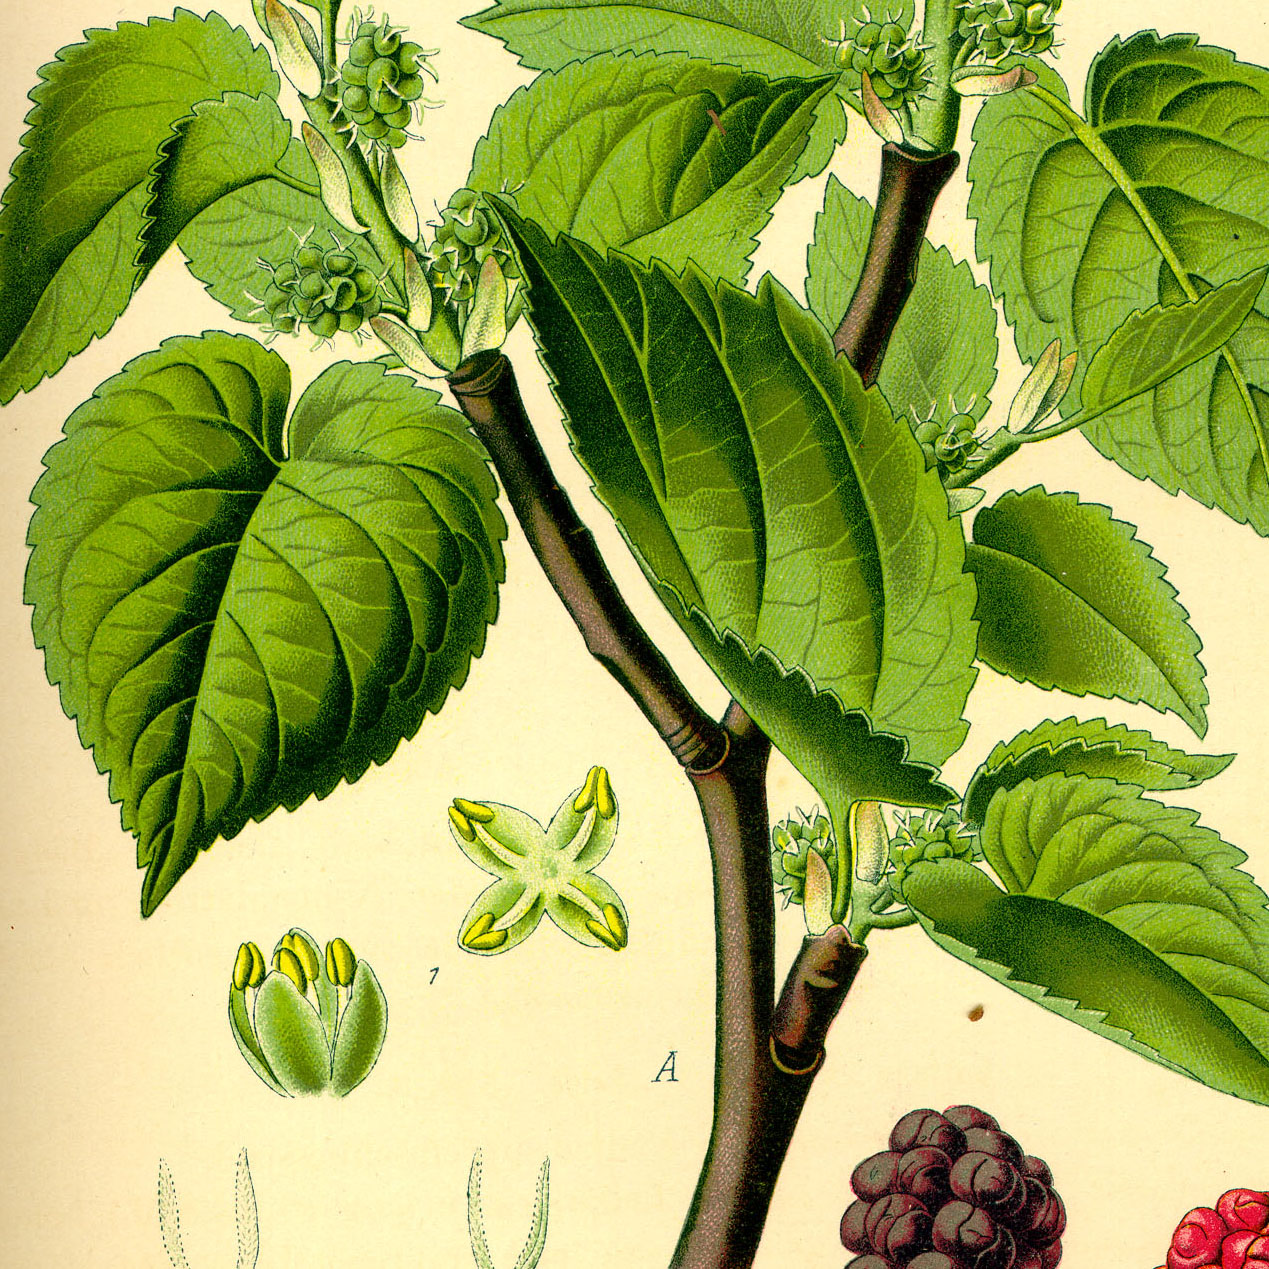 Mulberry leaves cut - 1000g